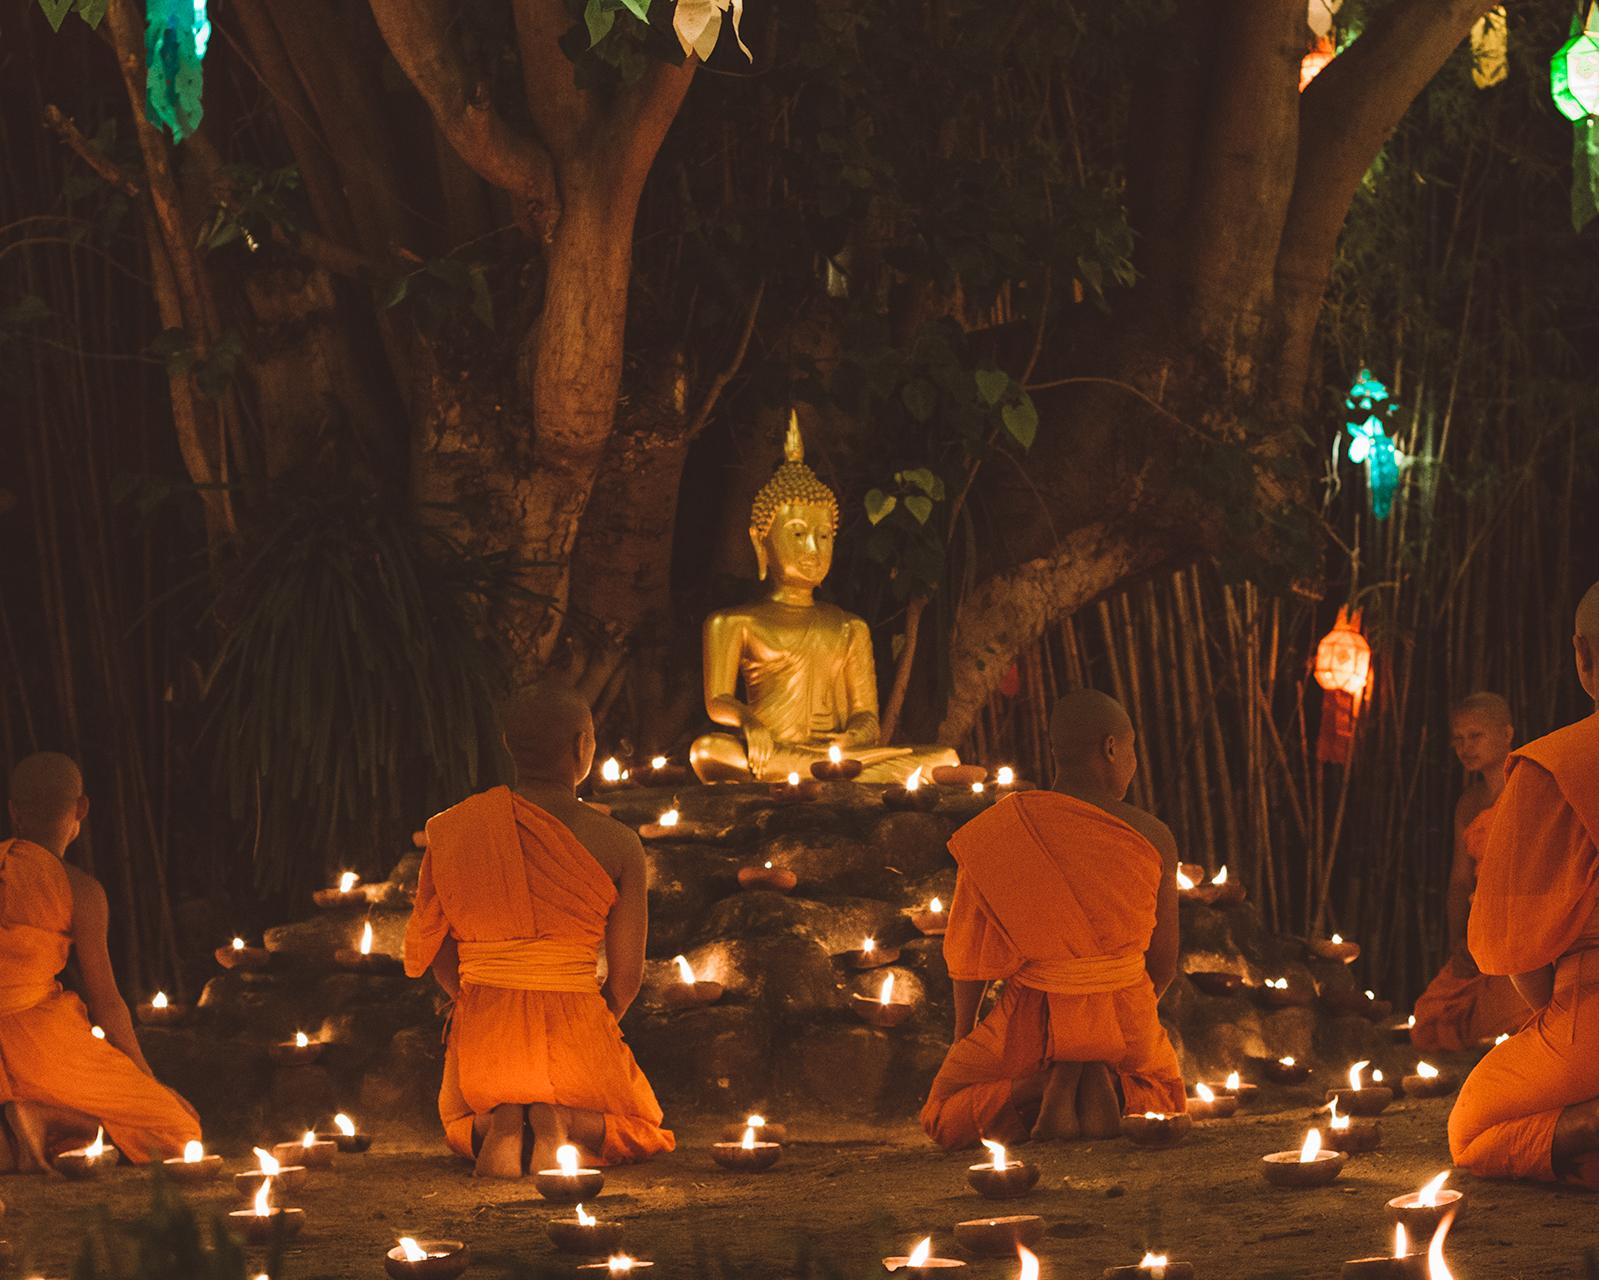 buddhism thailand lantern festival chiang mai all you need to know guide travel experience people culture tradition asia